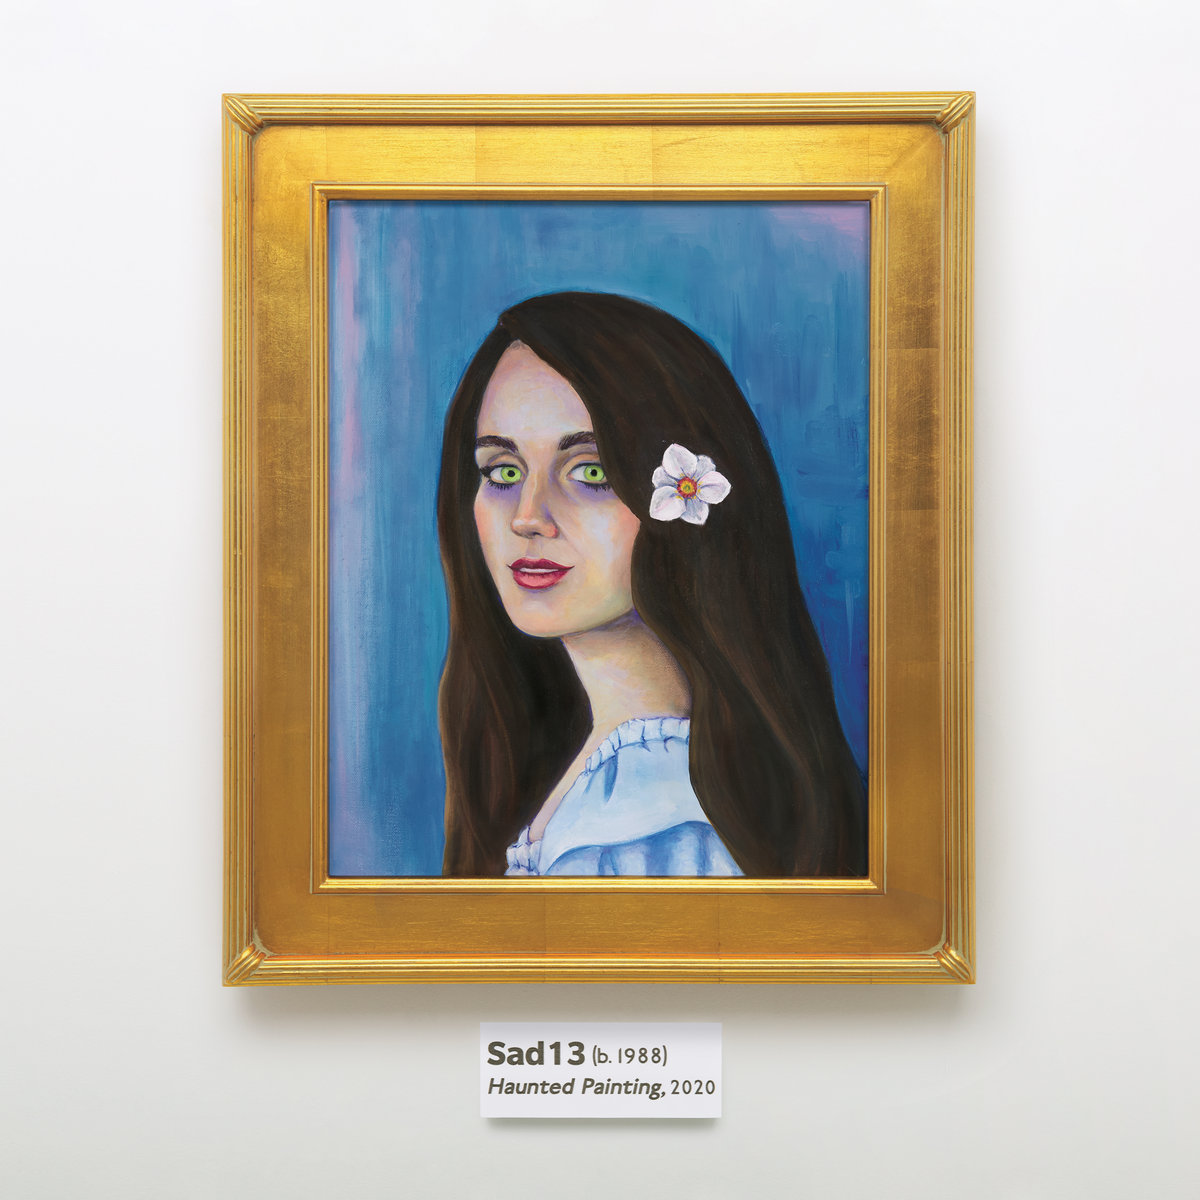 Sad13 - Haunted Painting LP